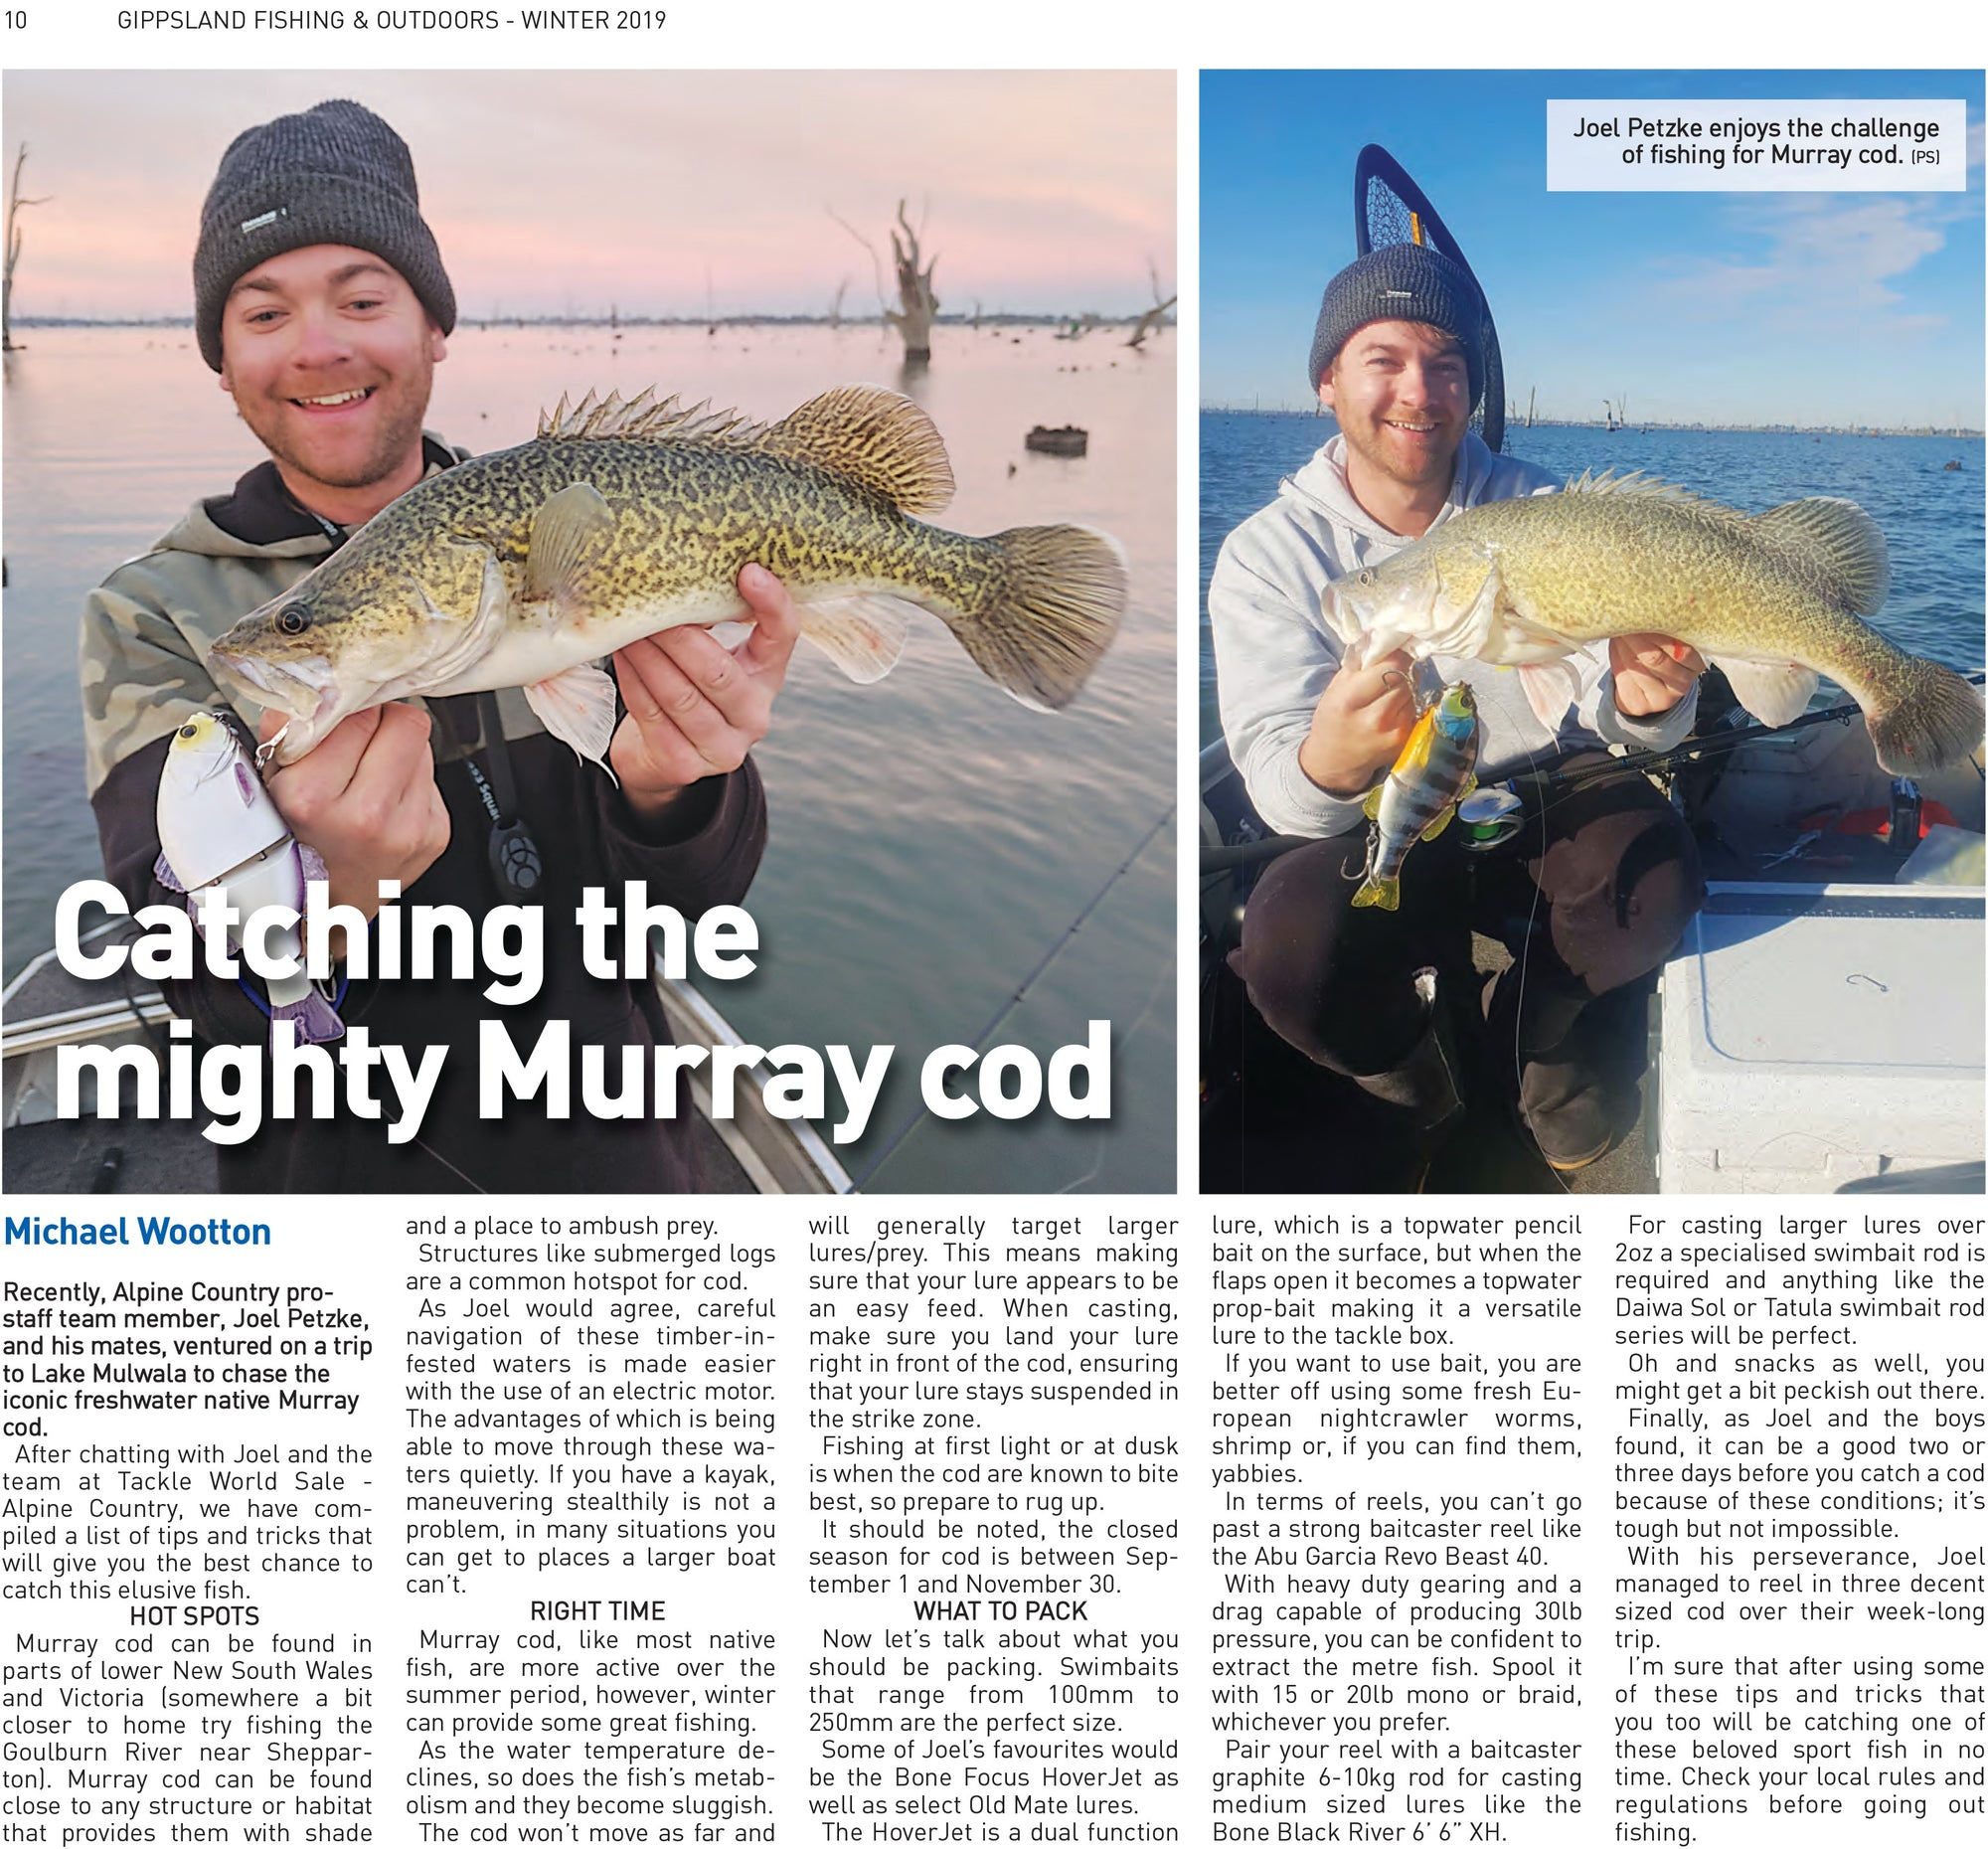 Catching the mighty Murray cod